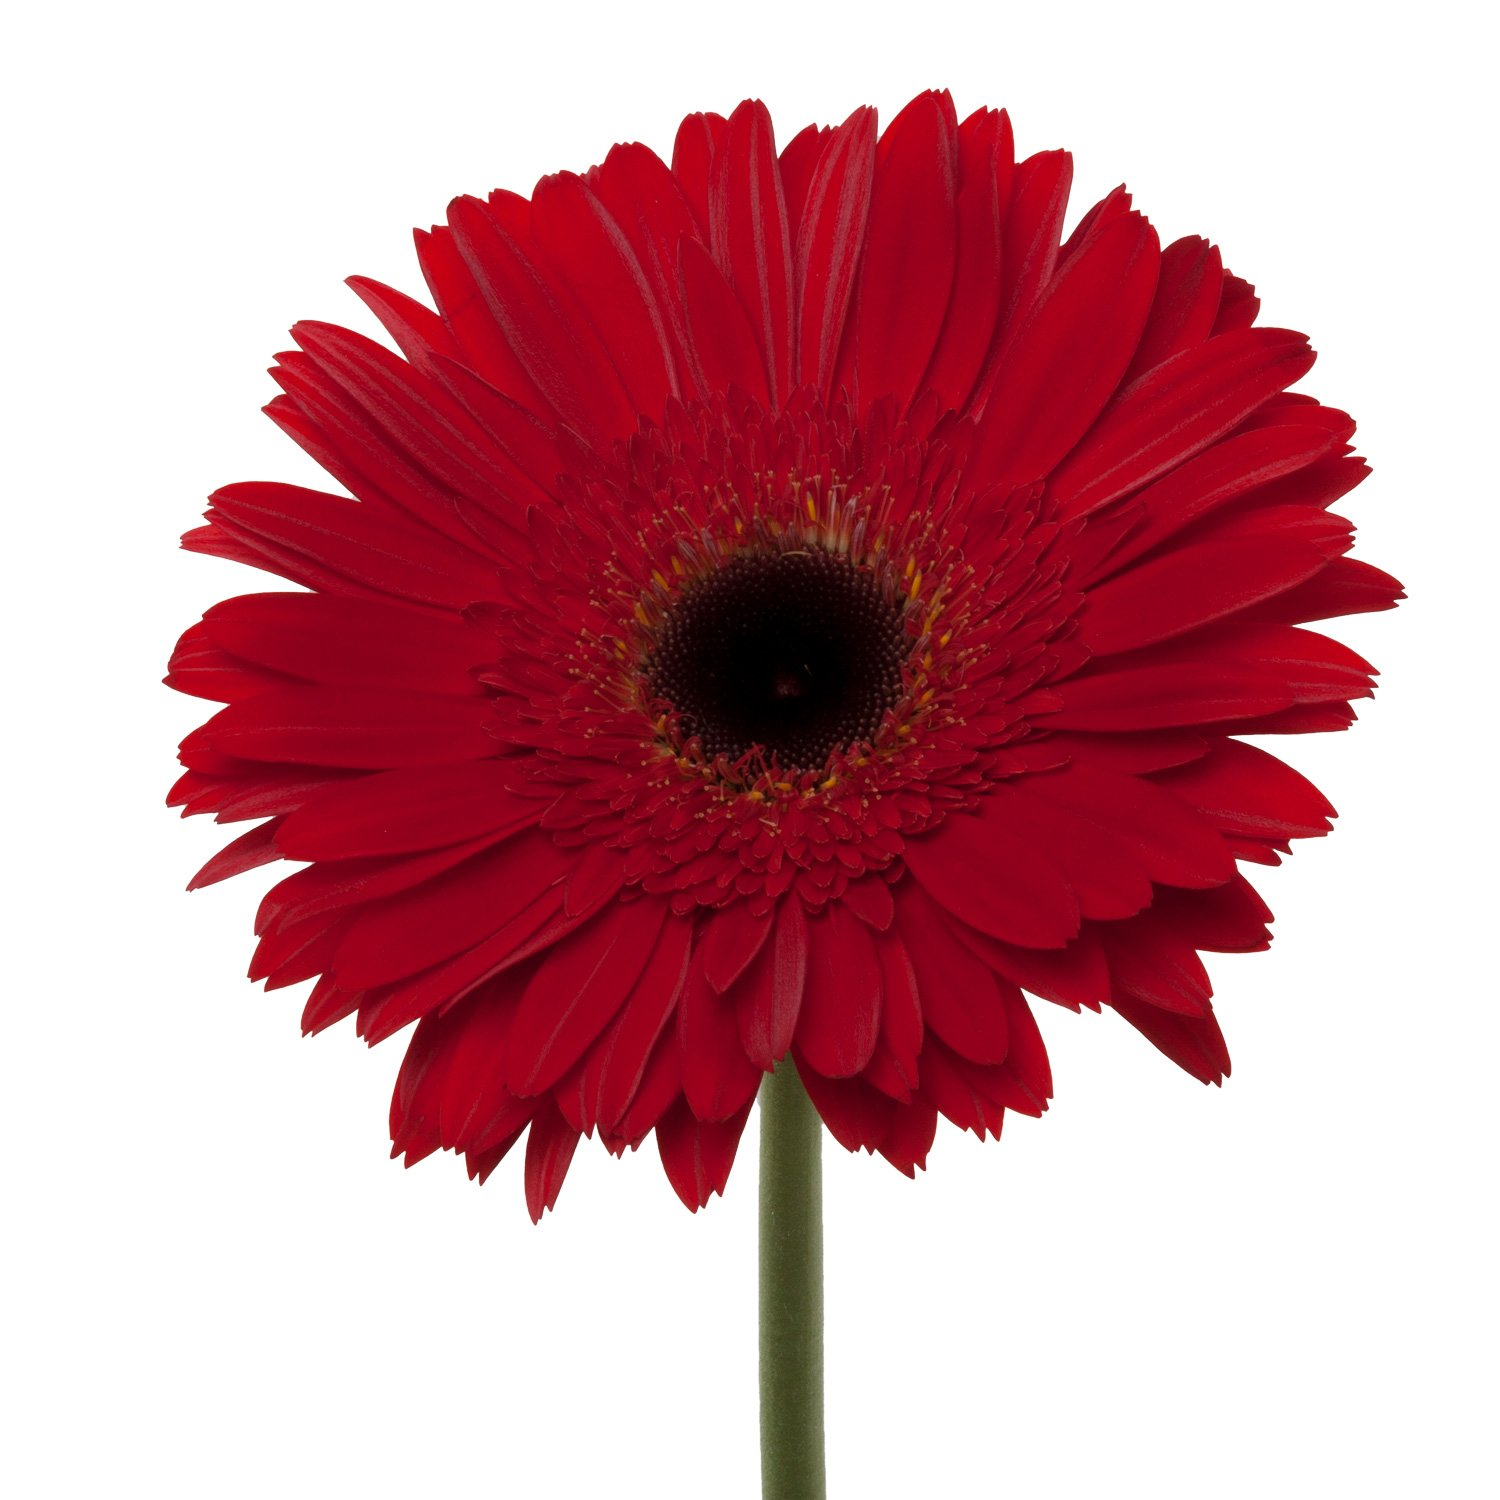 Gerbera Dark Center | Red - 40 Stem Count by Flower Farm Shop